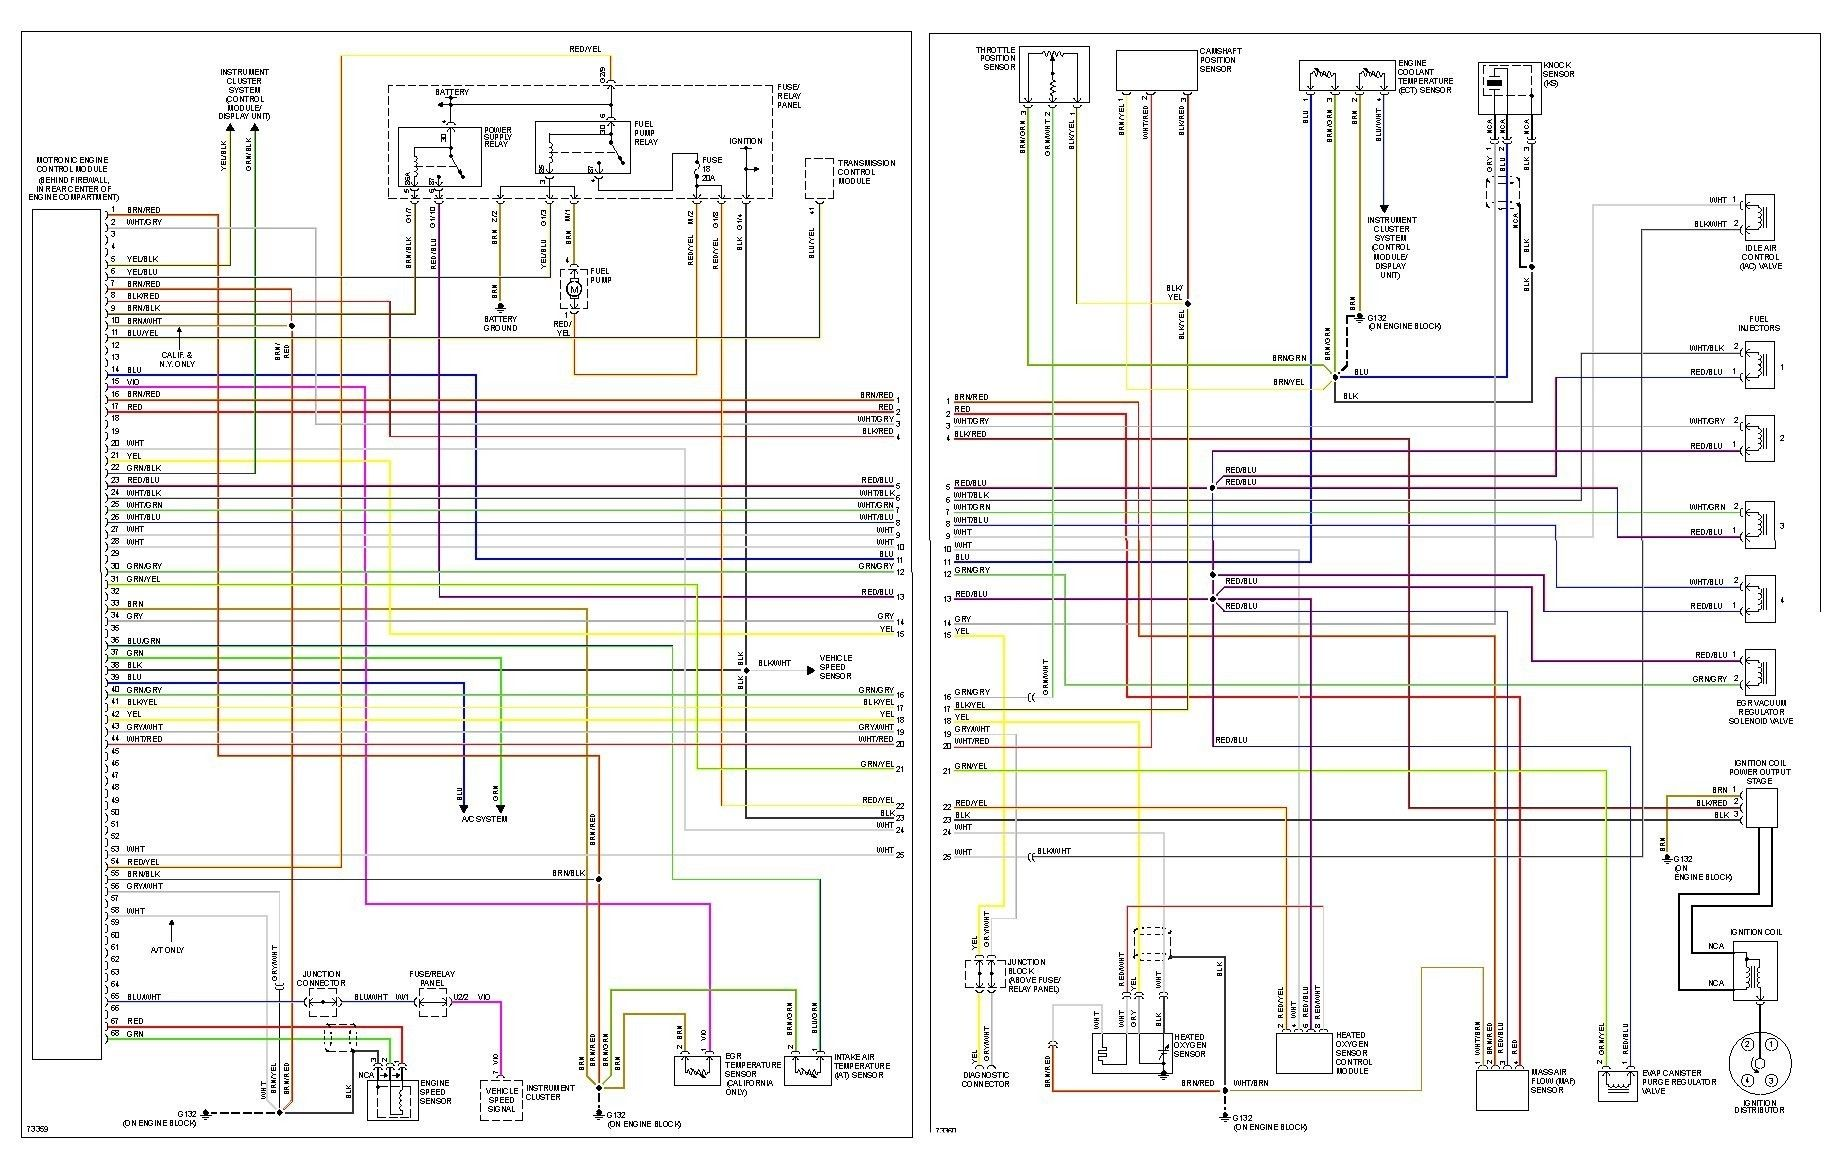 New Golf 4 1 9 Tdi Wiring Diagram Diagram Diagramsample